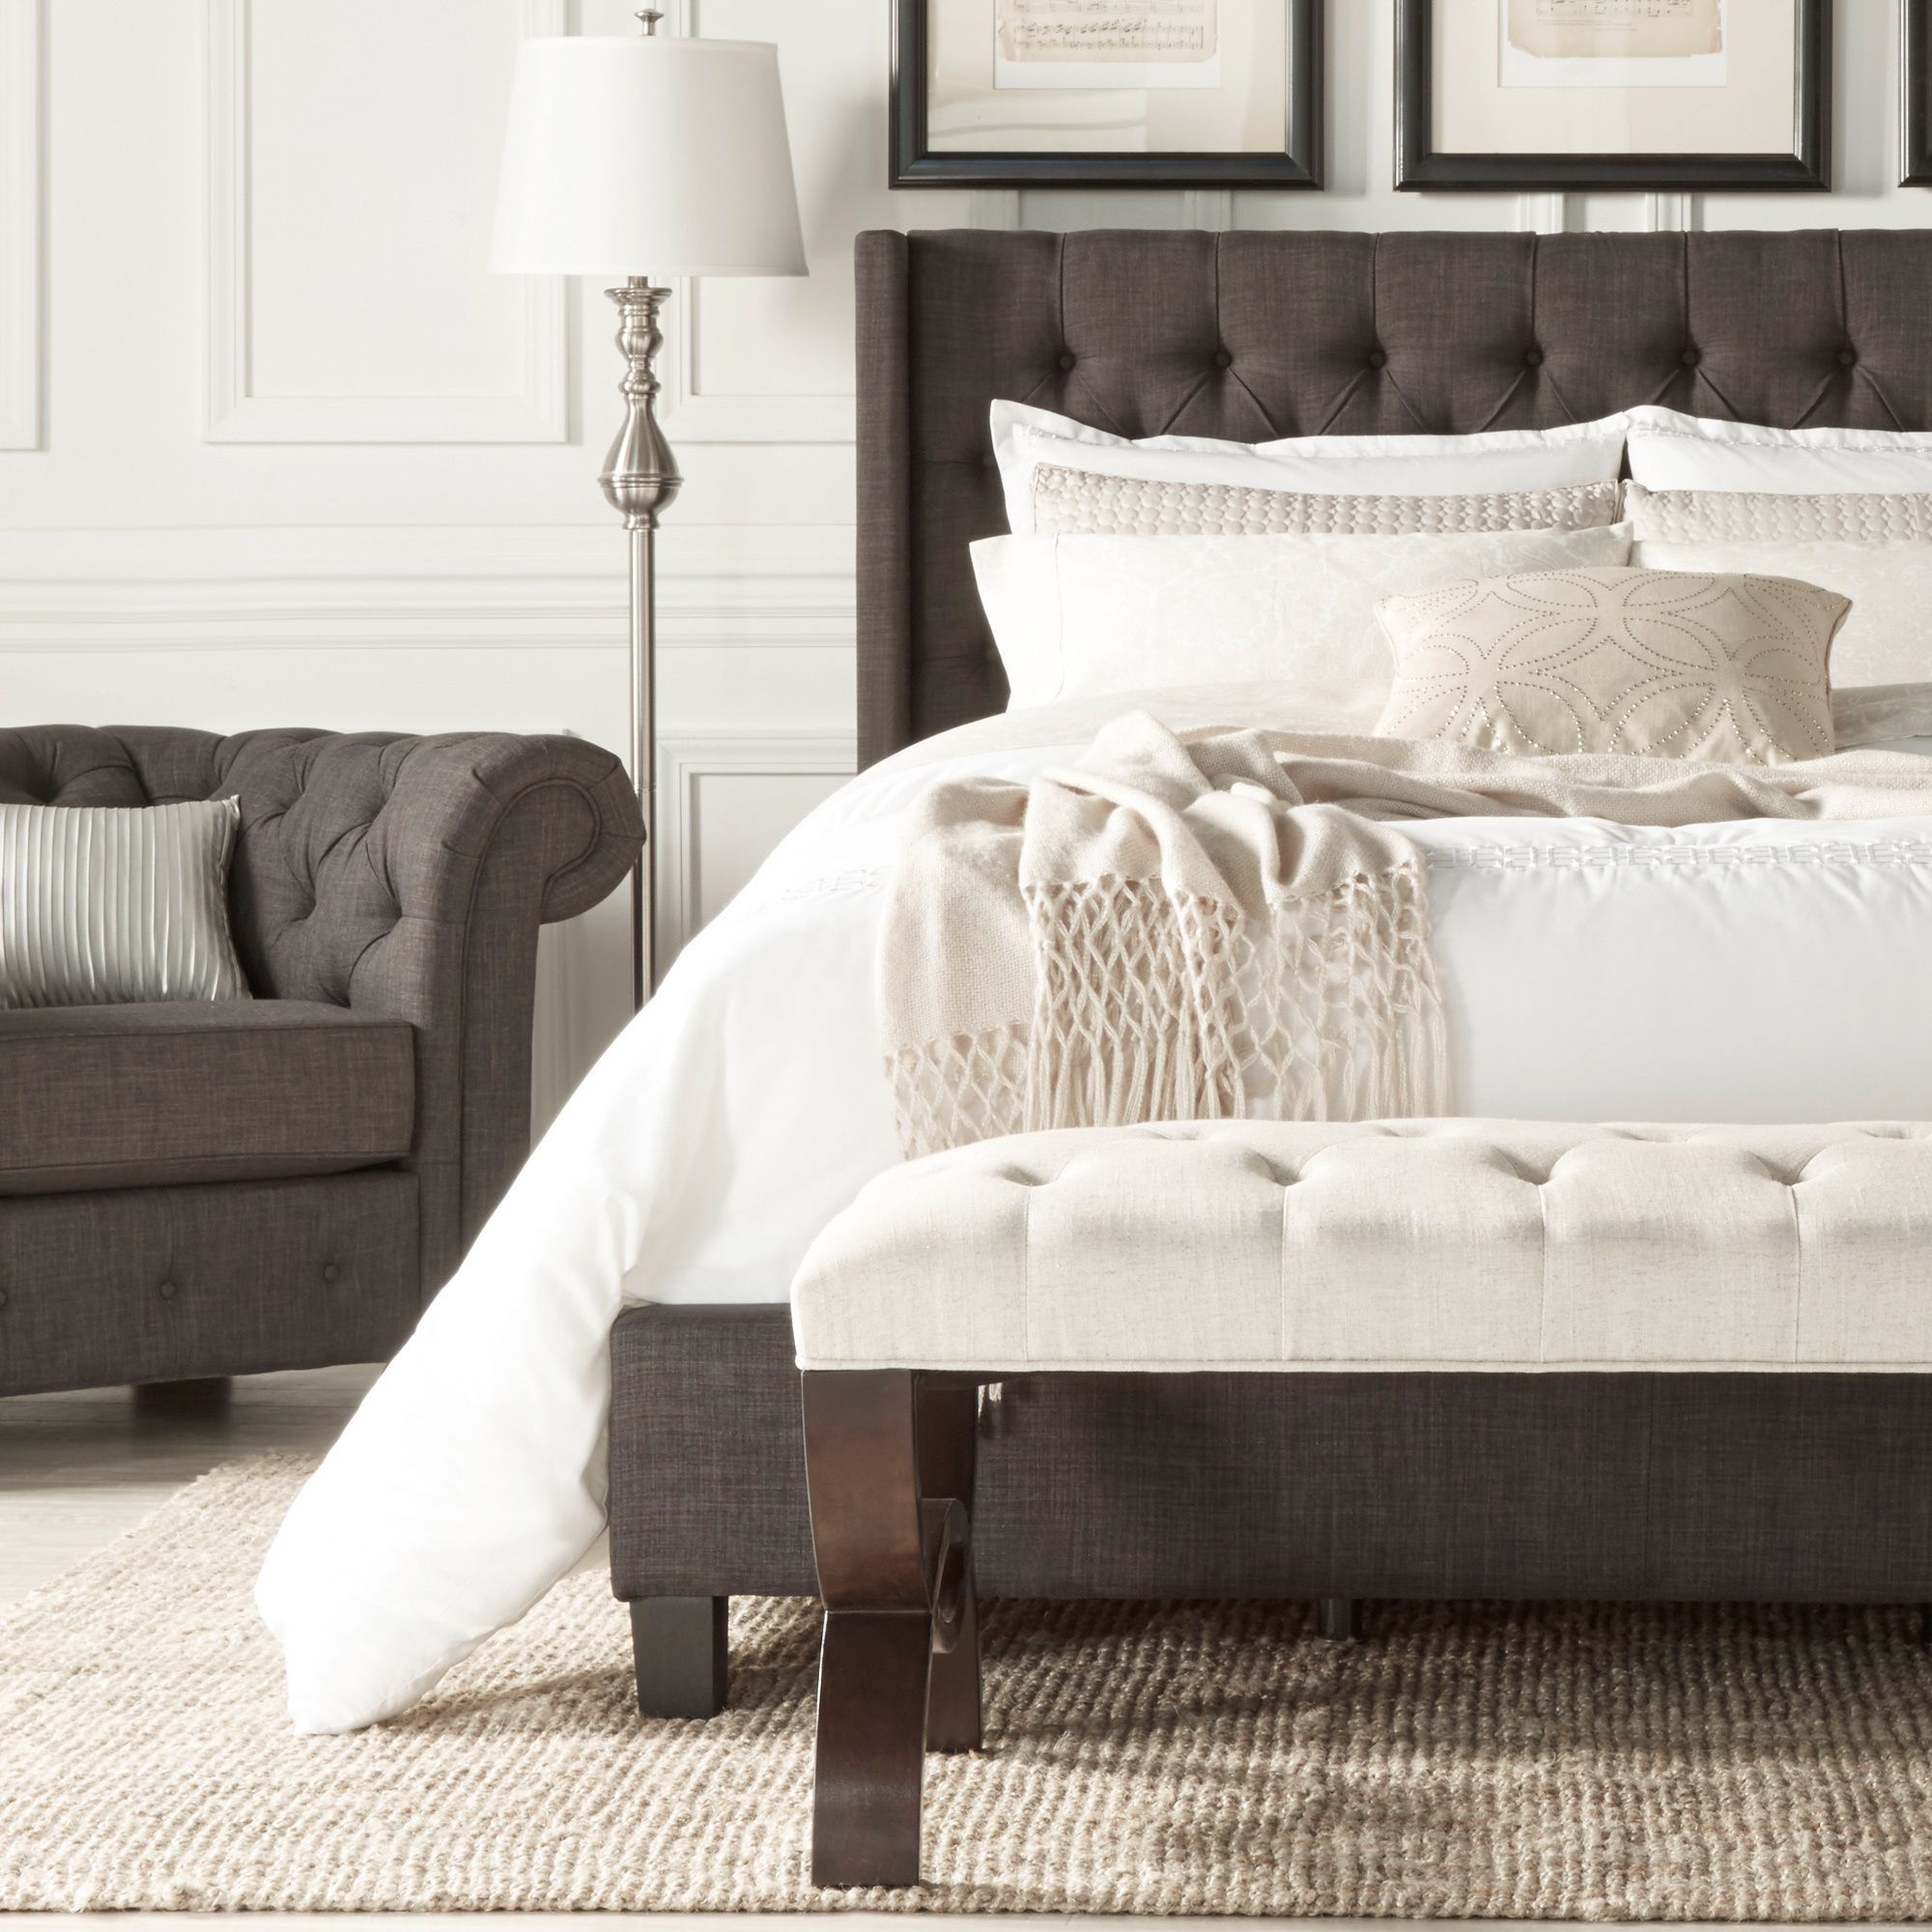 Naples Wingback Button Tufted Upholstered Queen Bed by iNSPIRE Q Artisan by  iNSPIRE Q